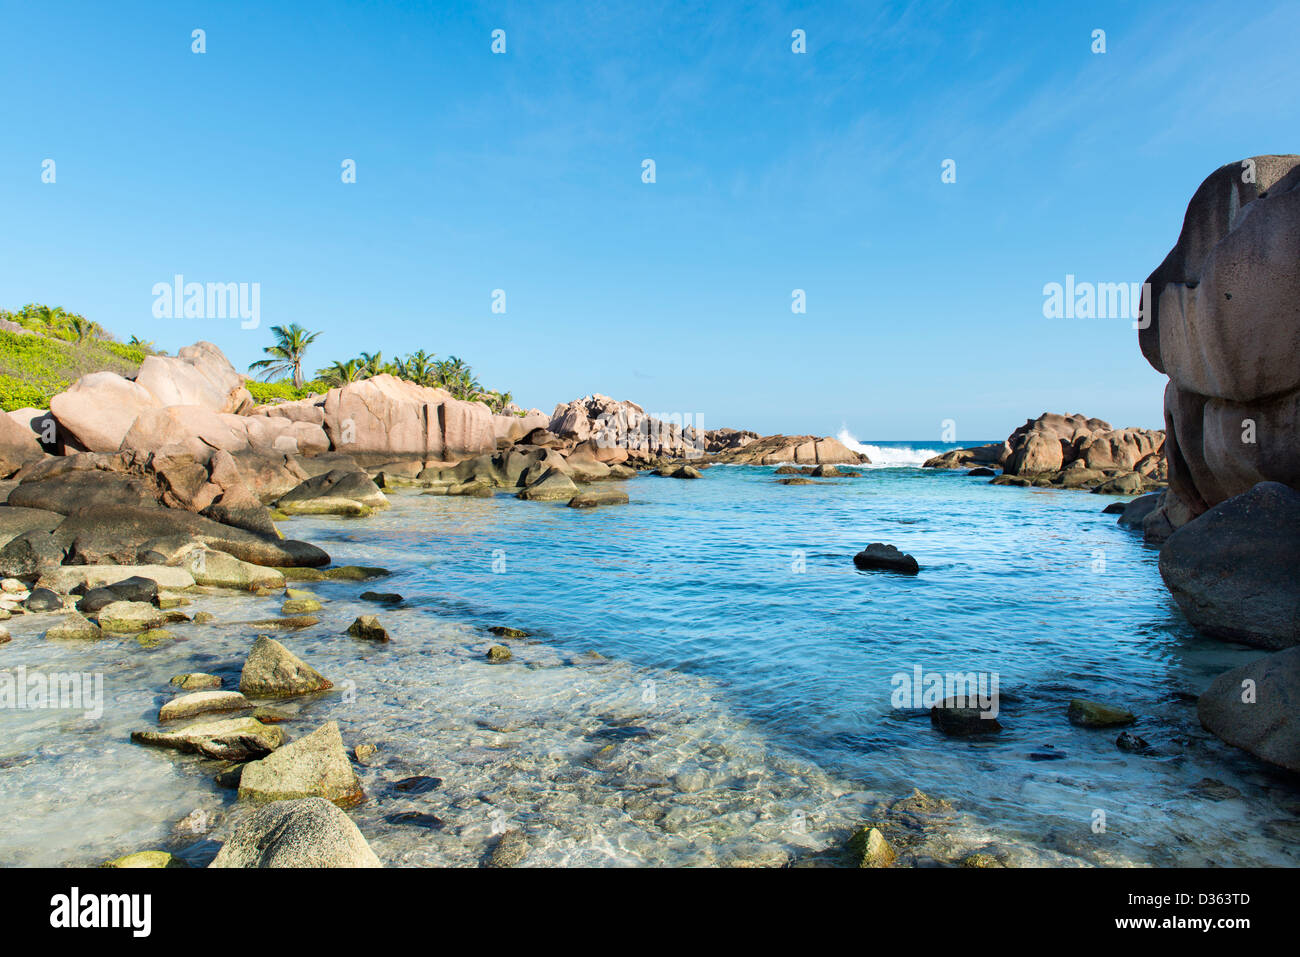 Tropical beach at Seychelles - nature background - Stock Image